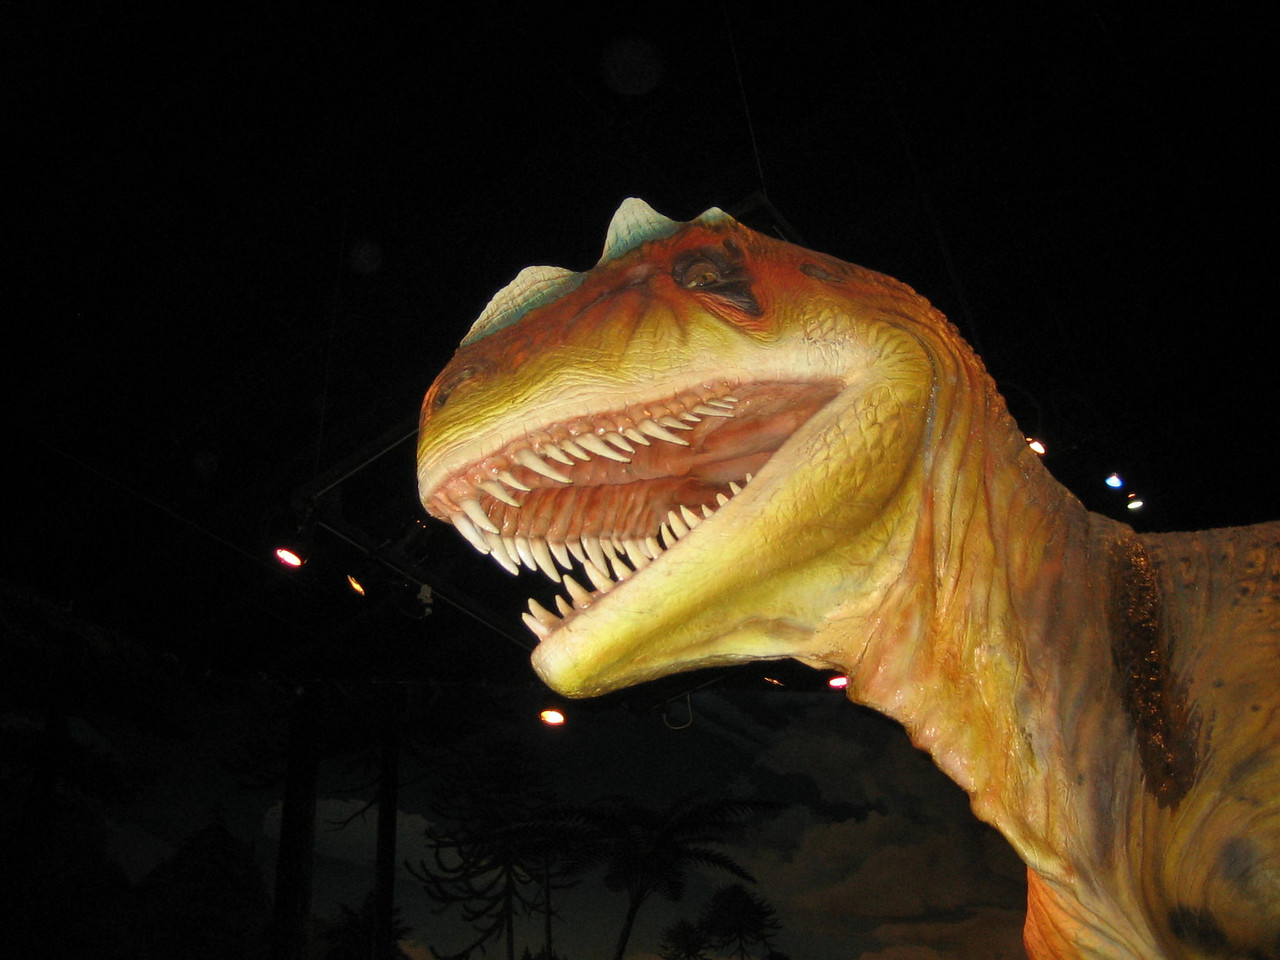 Dinosaur at the Museum of Science